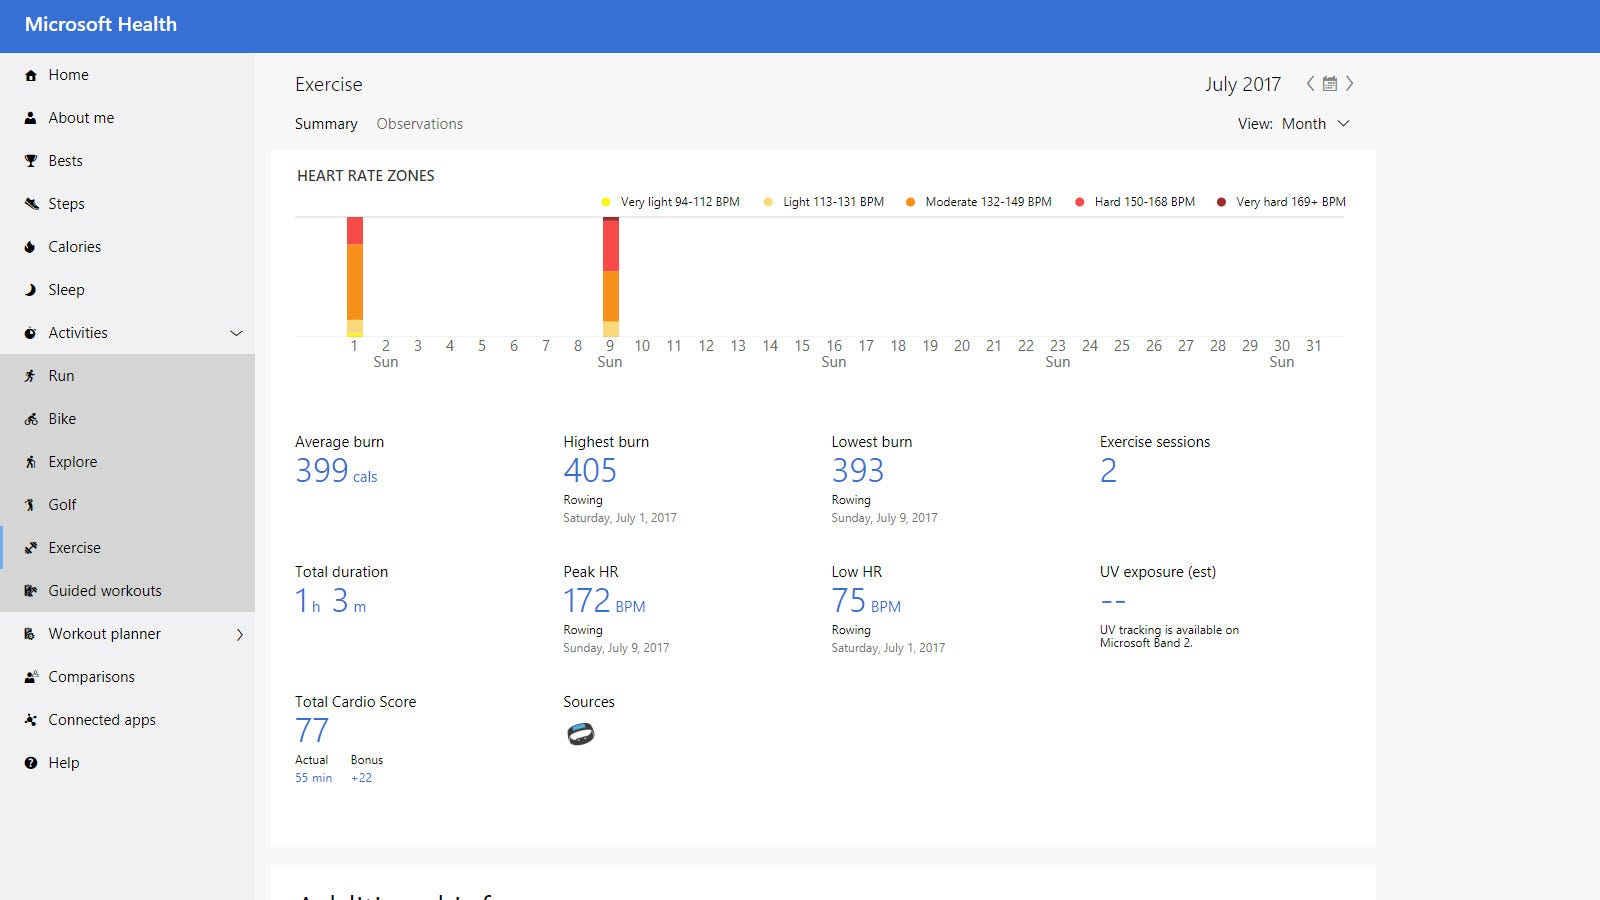 Microsoft Health Exercise results